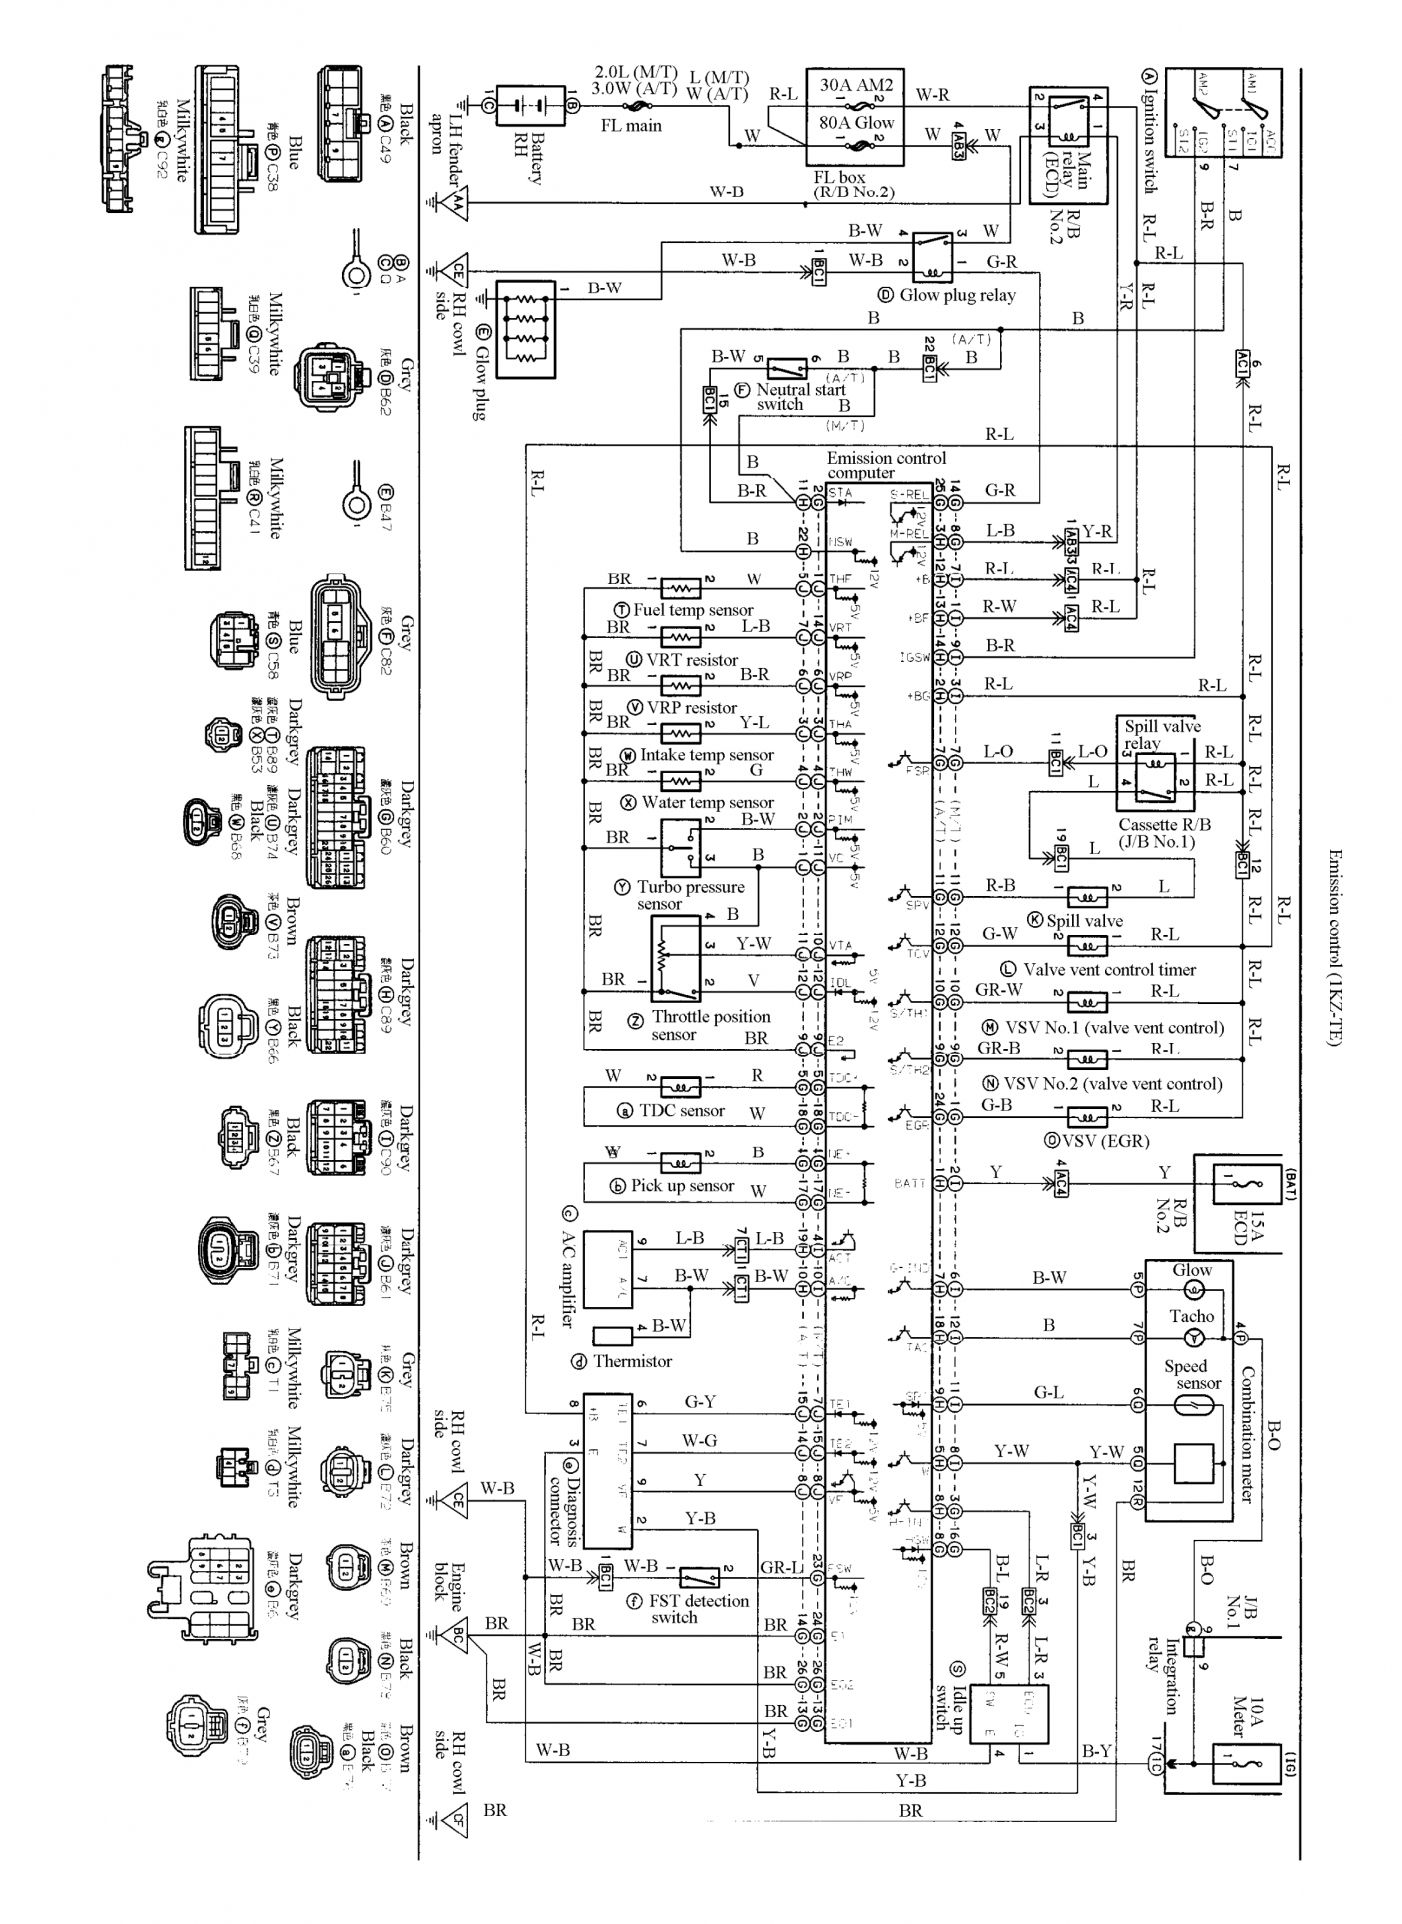 1kz Engine Wiring Diagram And Toyota Surf Wiring Diagram